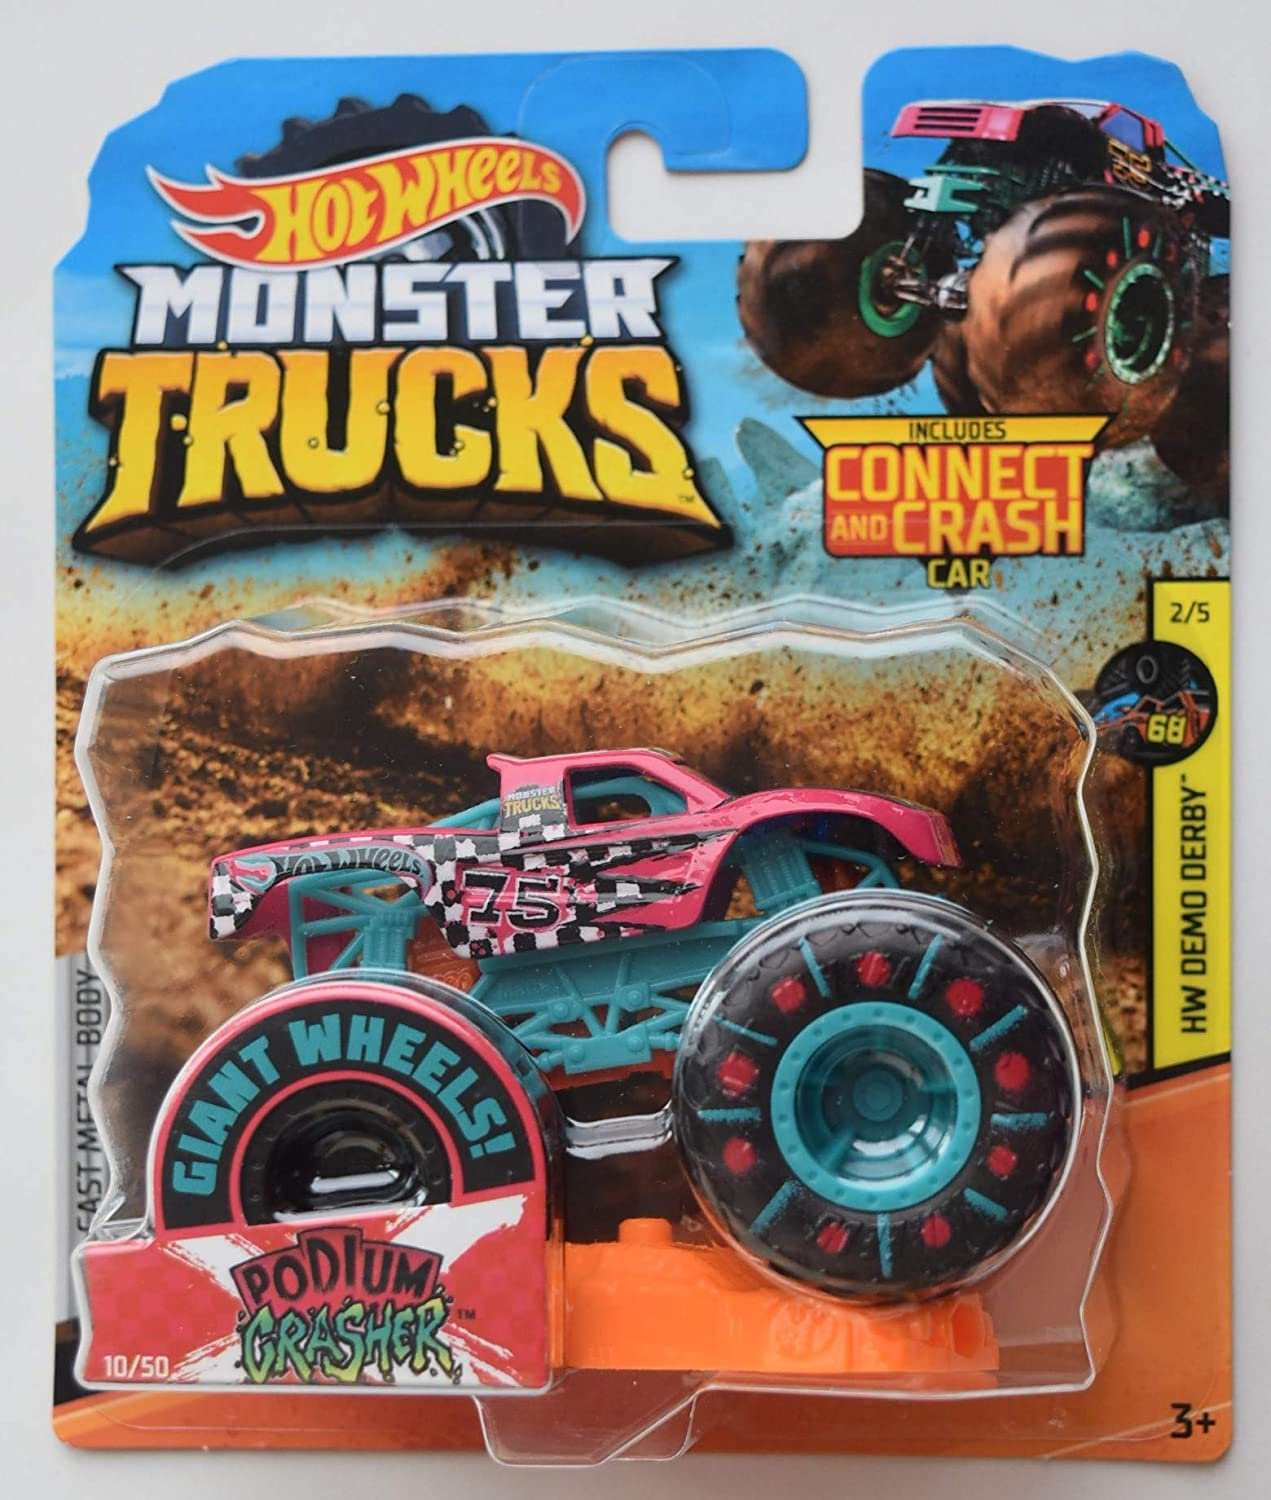 Amazon Com Hot Wheels Monster Truck 1 64 Scale Pink Podium Crasher 10 50 Connect And Crash Car Toys Games